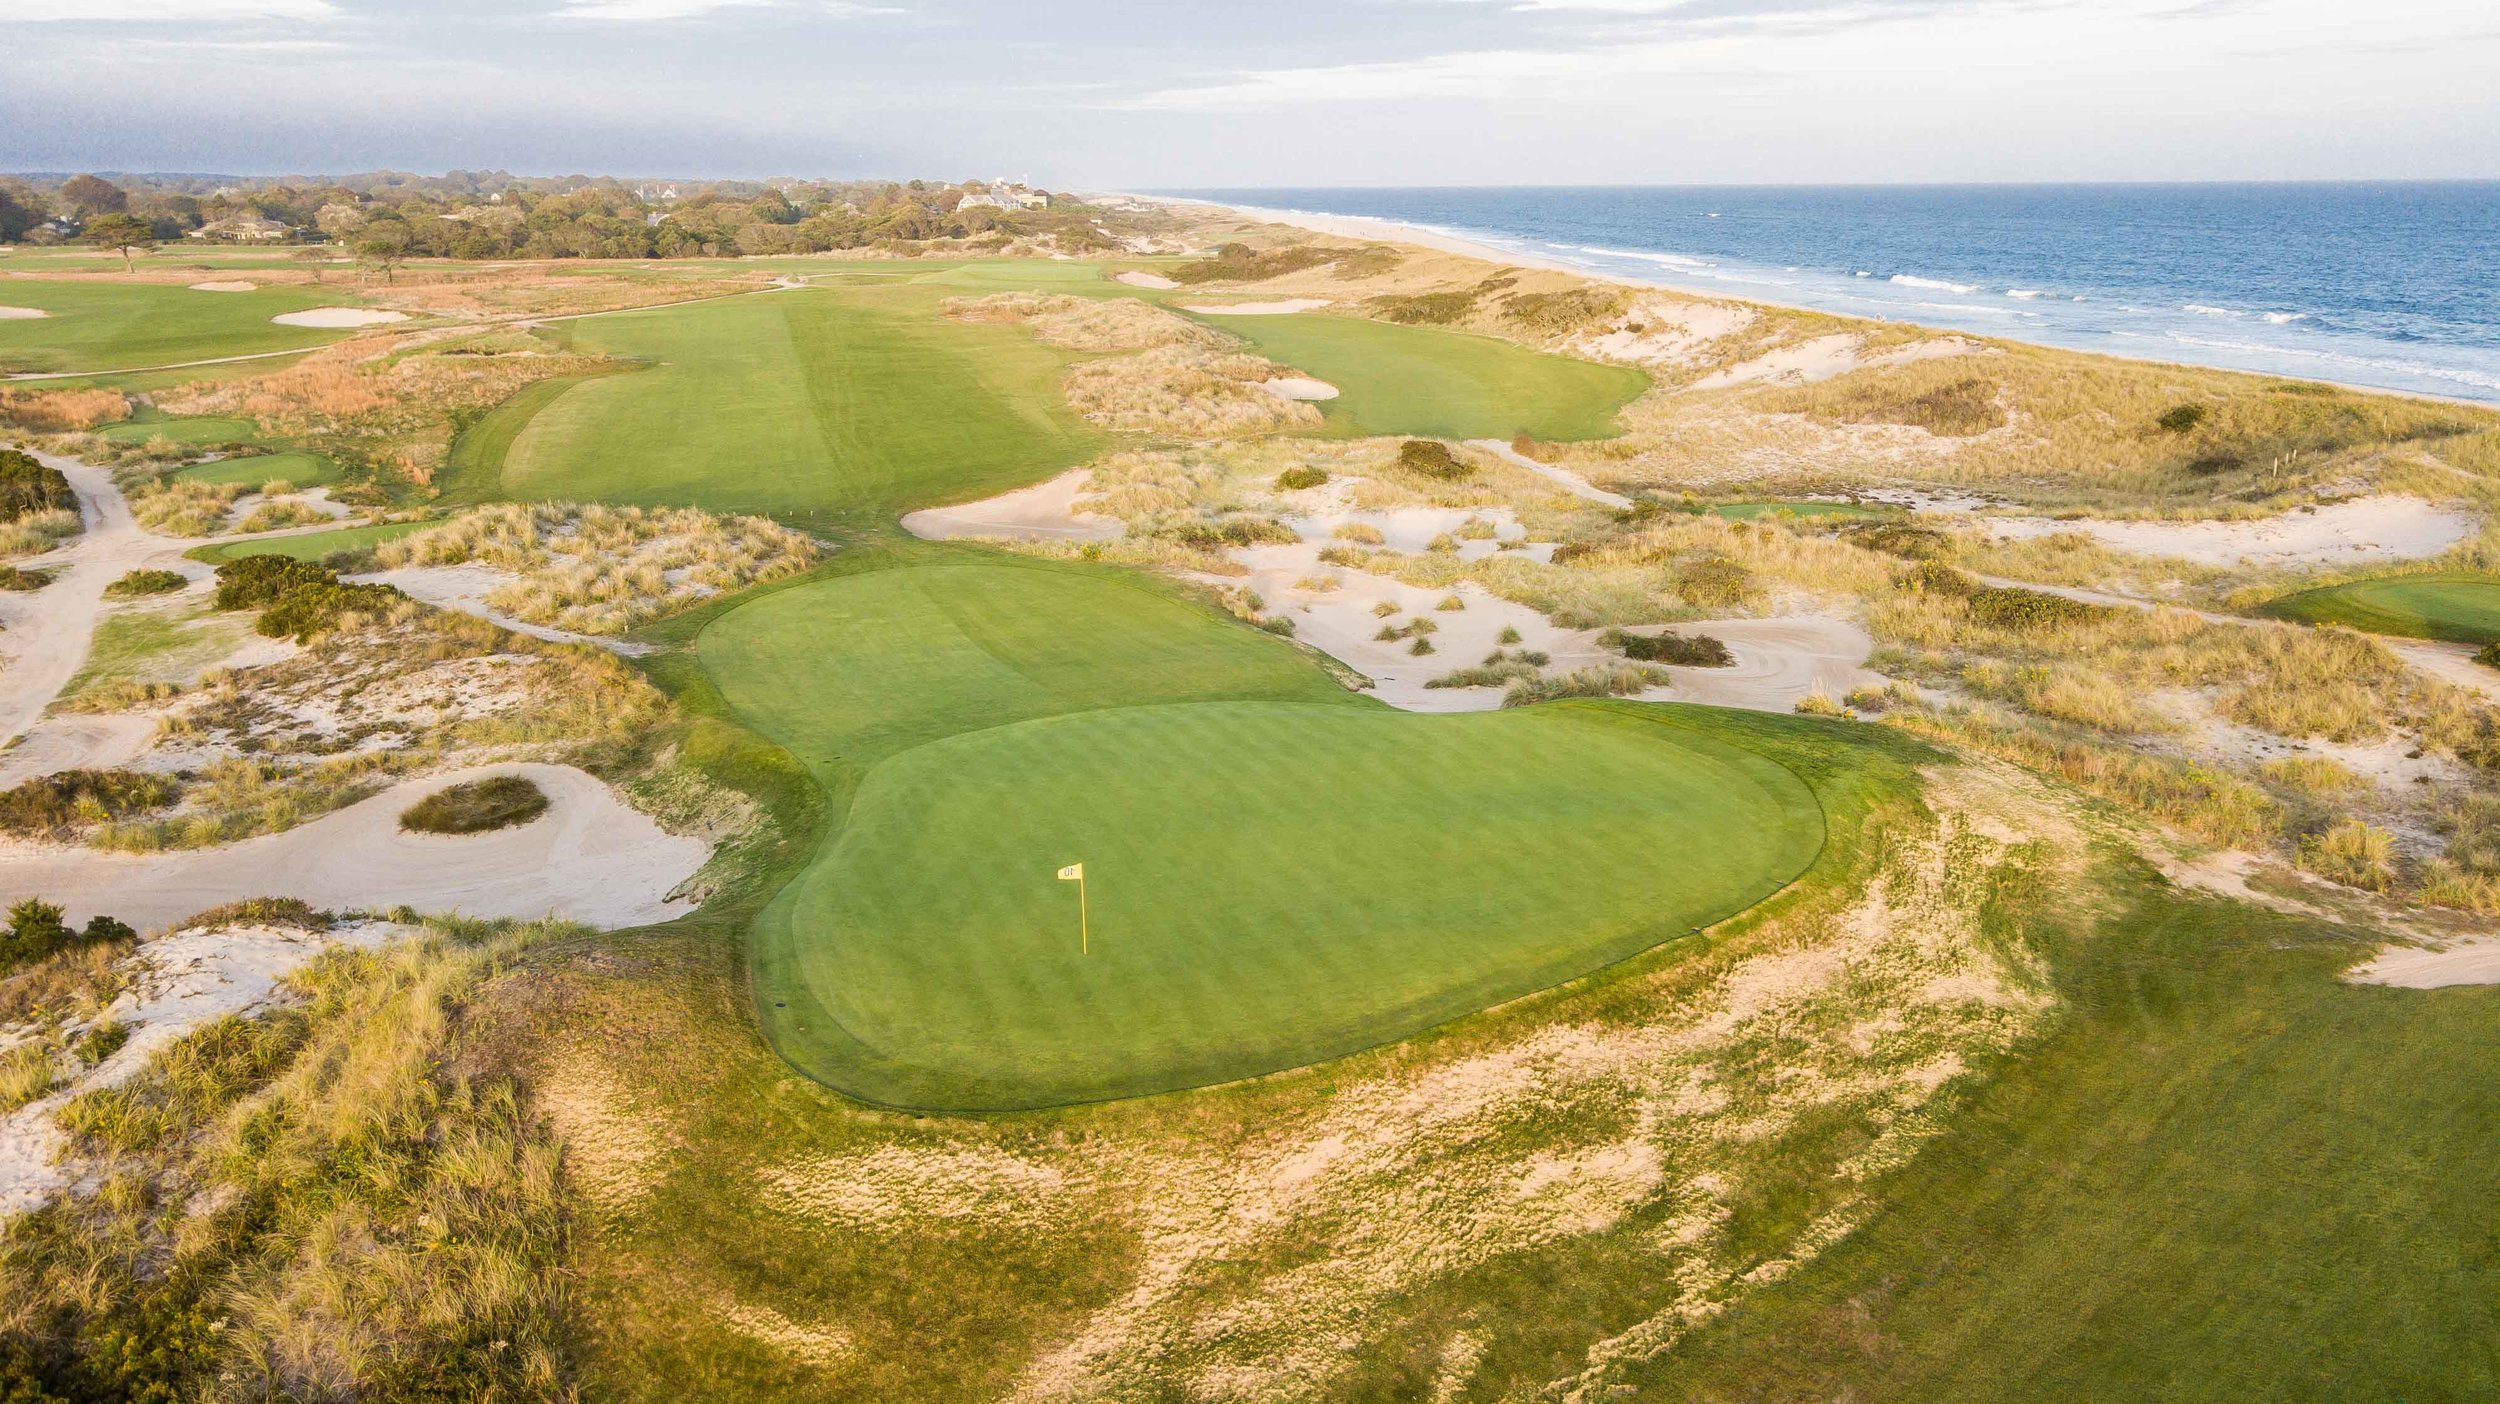 Maidstone Club in East Hampton, New York